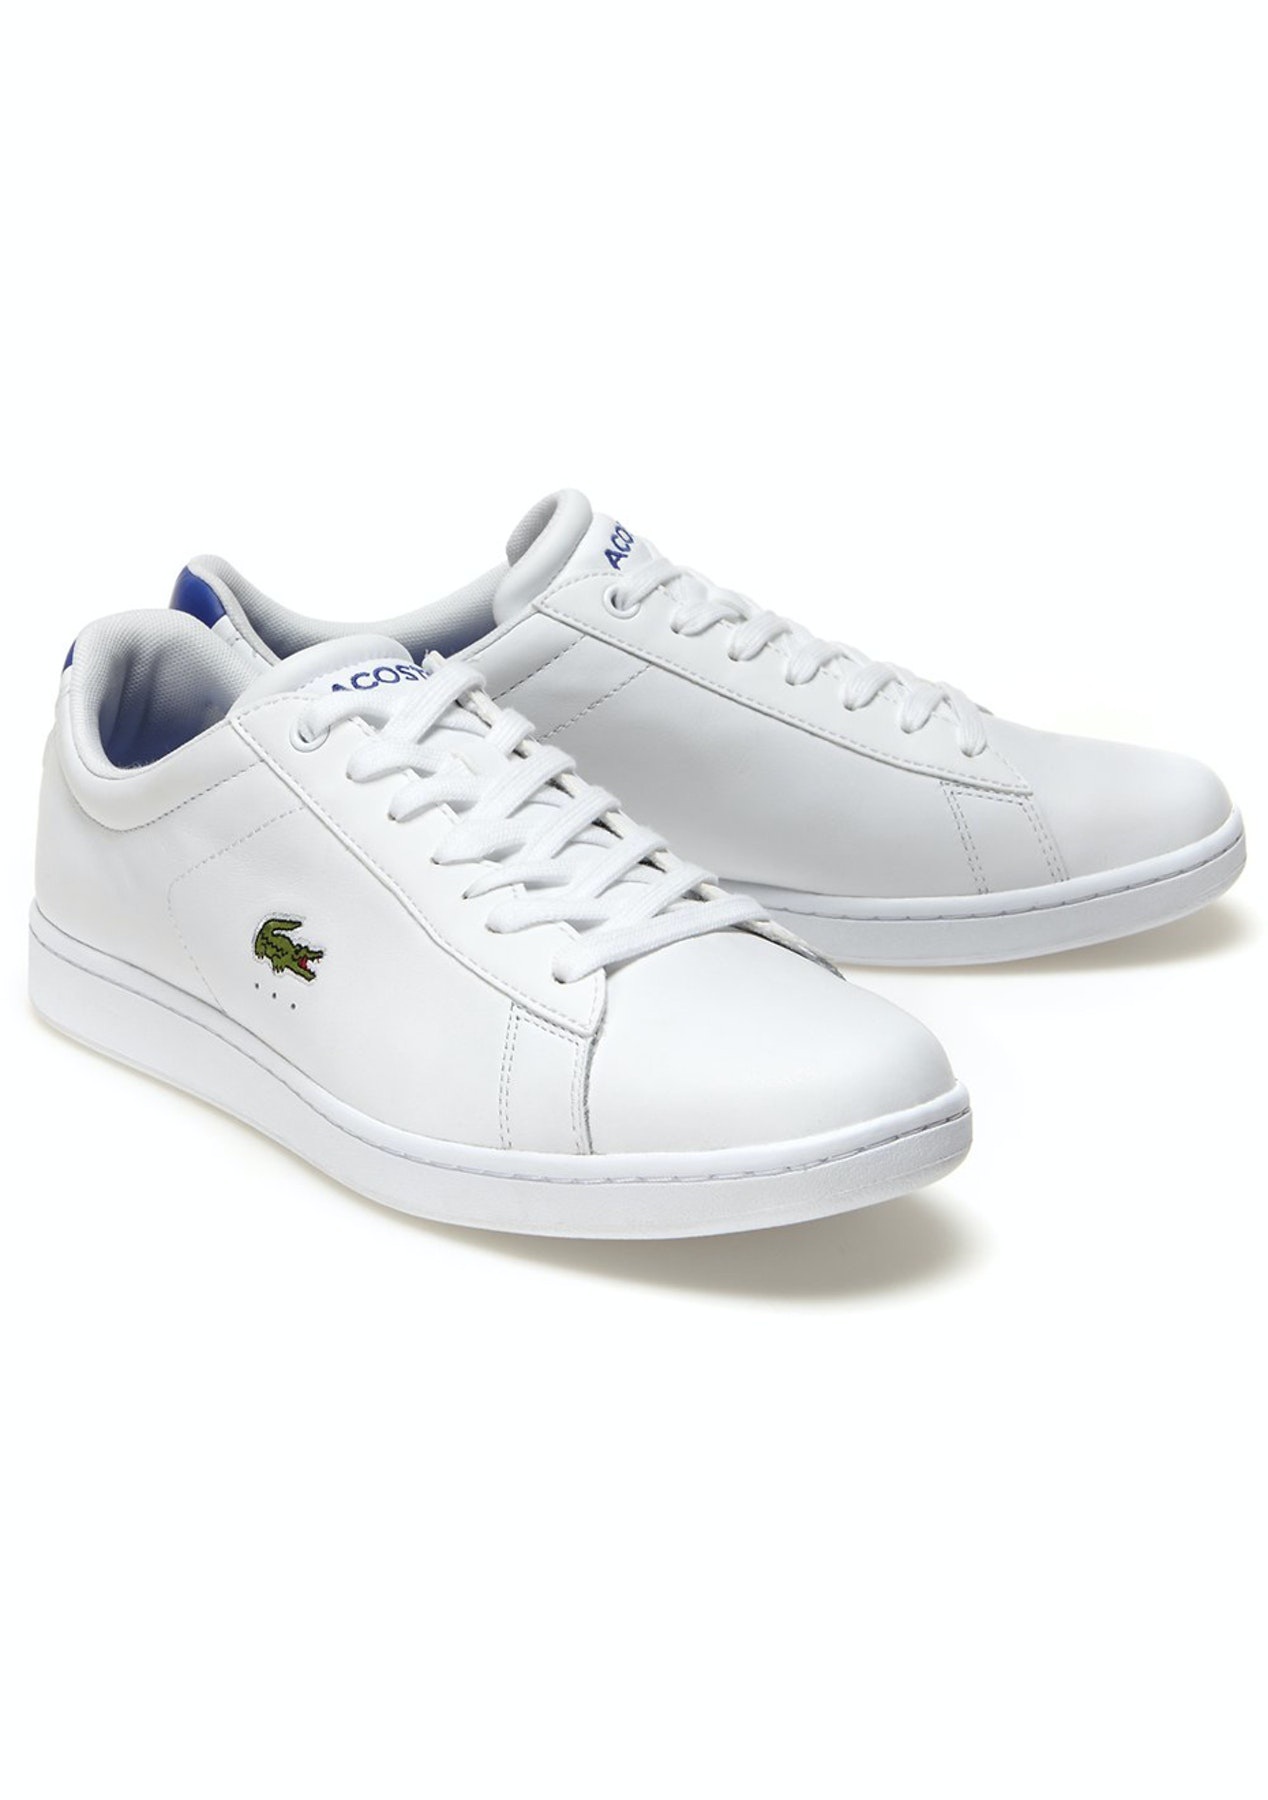 9a1d103dc35cc Mens Lacoste - Carnaby Evo S216 2 Spm - White Blue - Lacoste 24 Hours -  Onceit